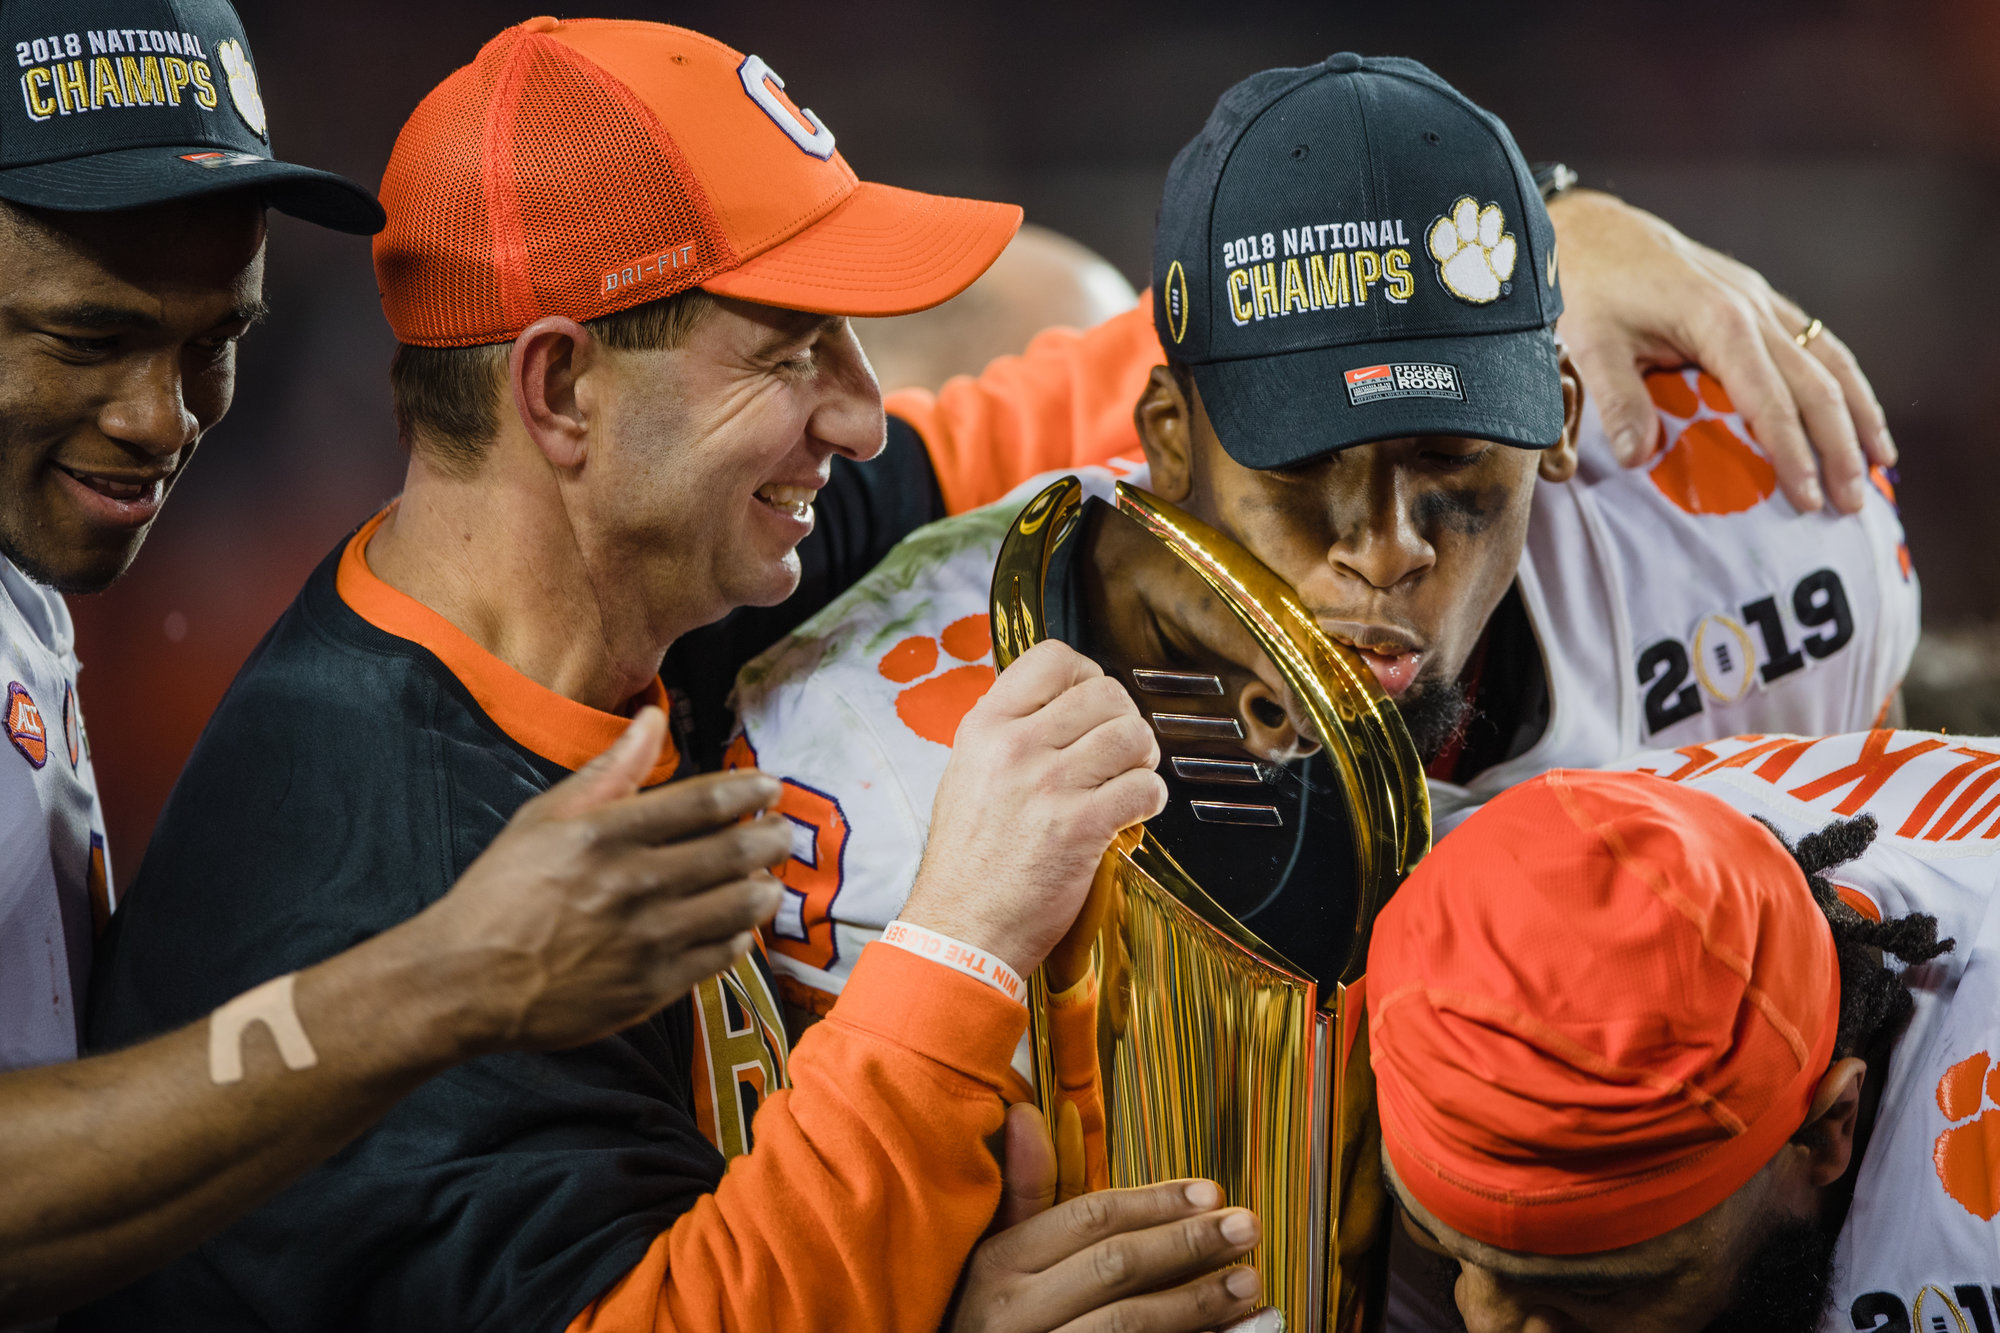 Clemson quarterback Dabo Swinney smiles on as defensive end Clelin Ferrell shows affection to the trophy after the Tigers routed Alabama 44-16 on Monday, Jan. 7 at Levi's Stadium in Santa Clara, California, to win the 2019 CFP National Championship.